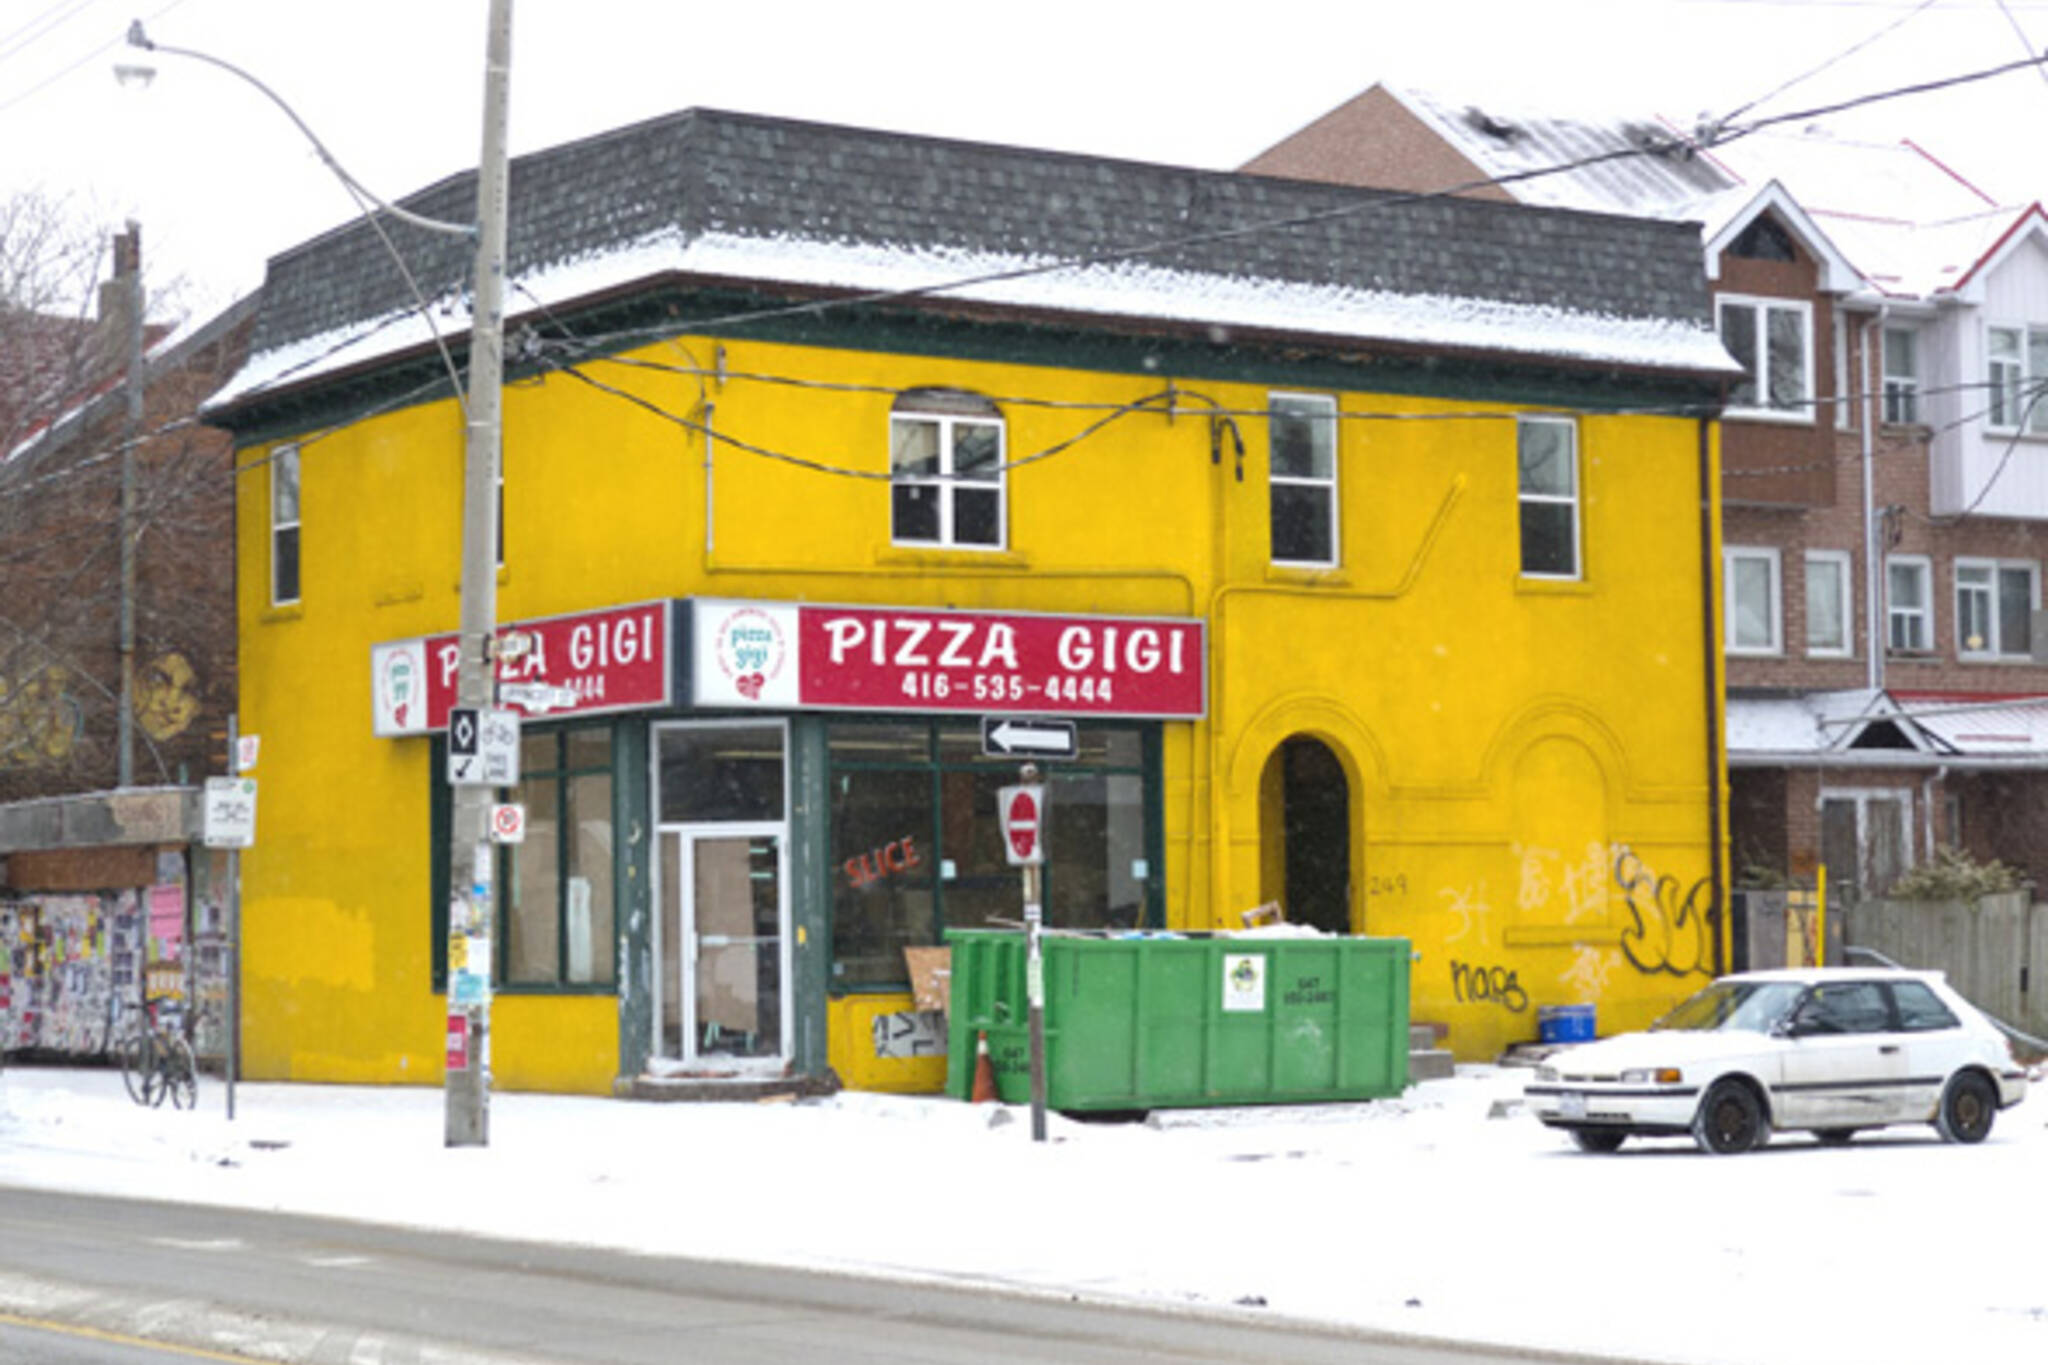 Pizza Gigi reopens